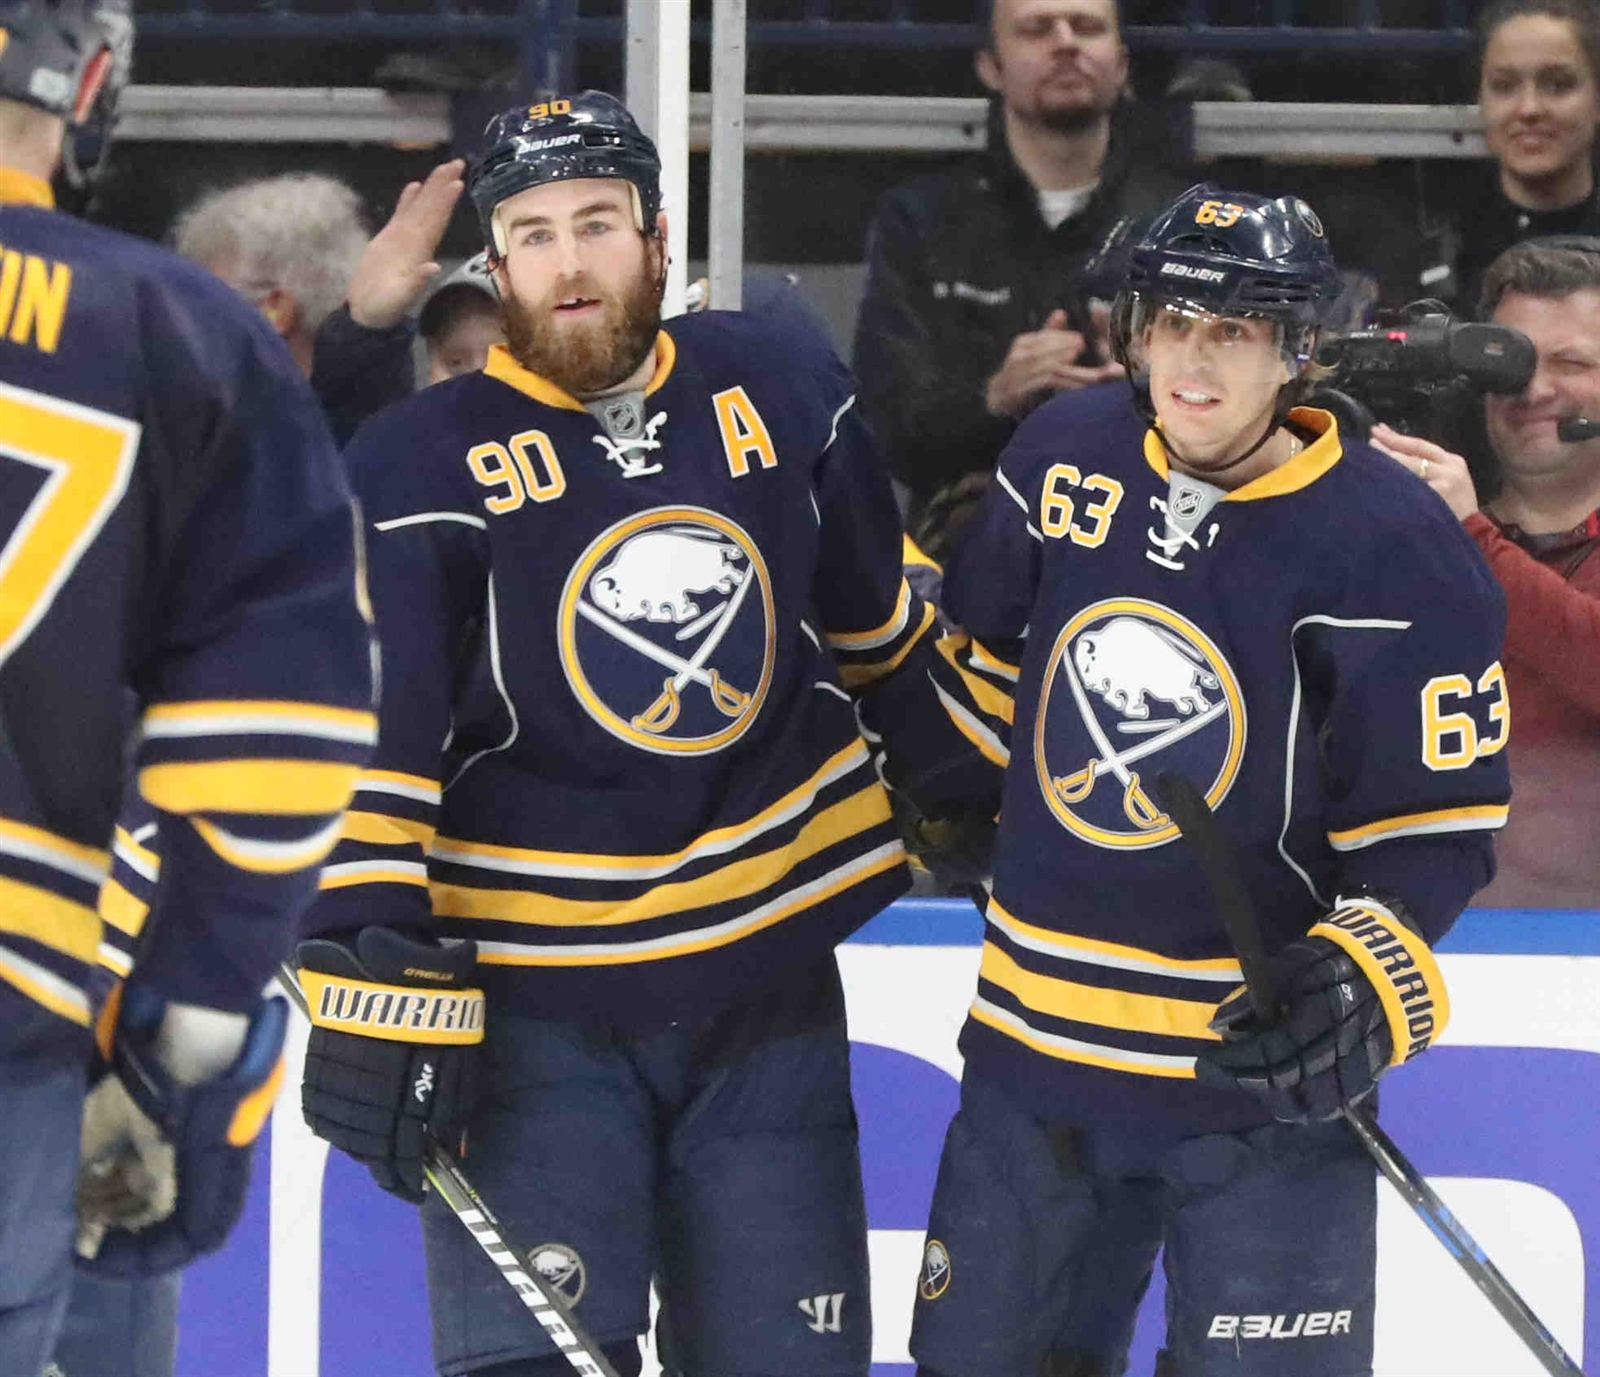 Ryan O'Reilly (90) says he needs to be a better leader for Tyler Ennis and the rest of the Sabres. (James P. McCoy/Buffalo News)